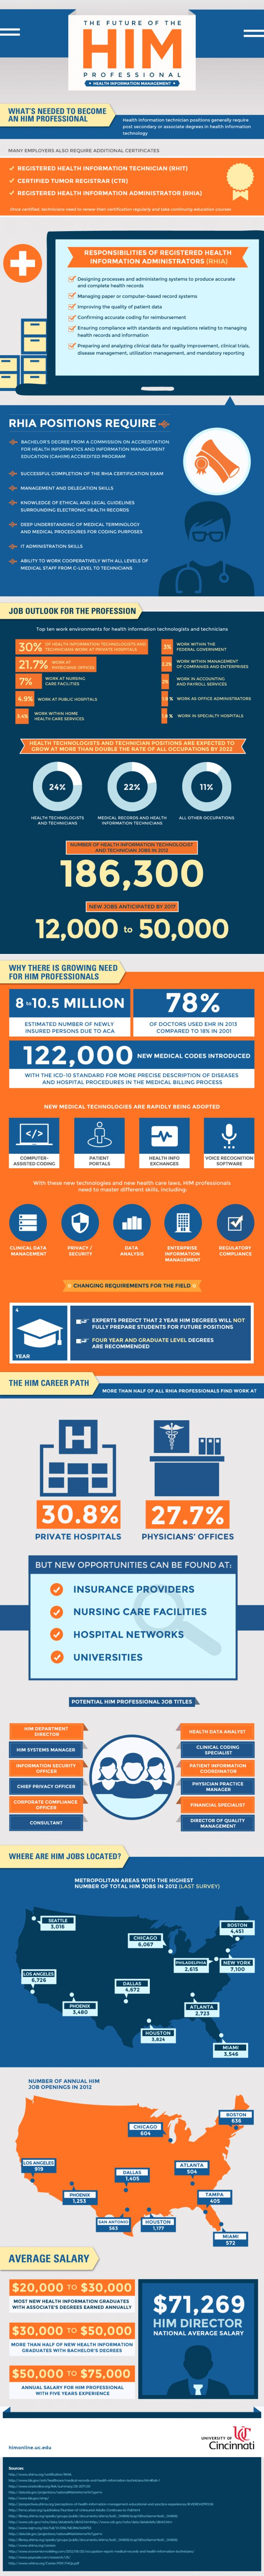 Infographic: Future of the HIM Professional infographic